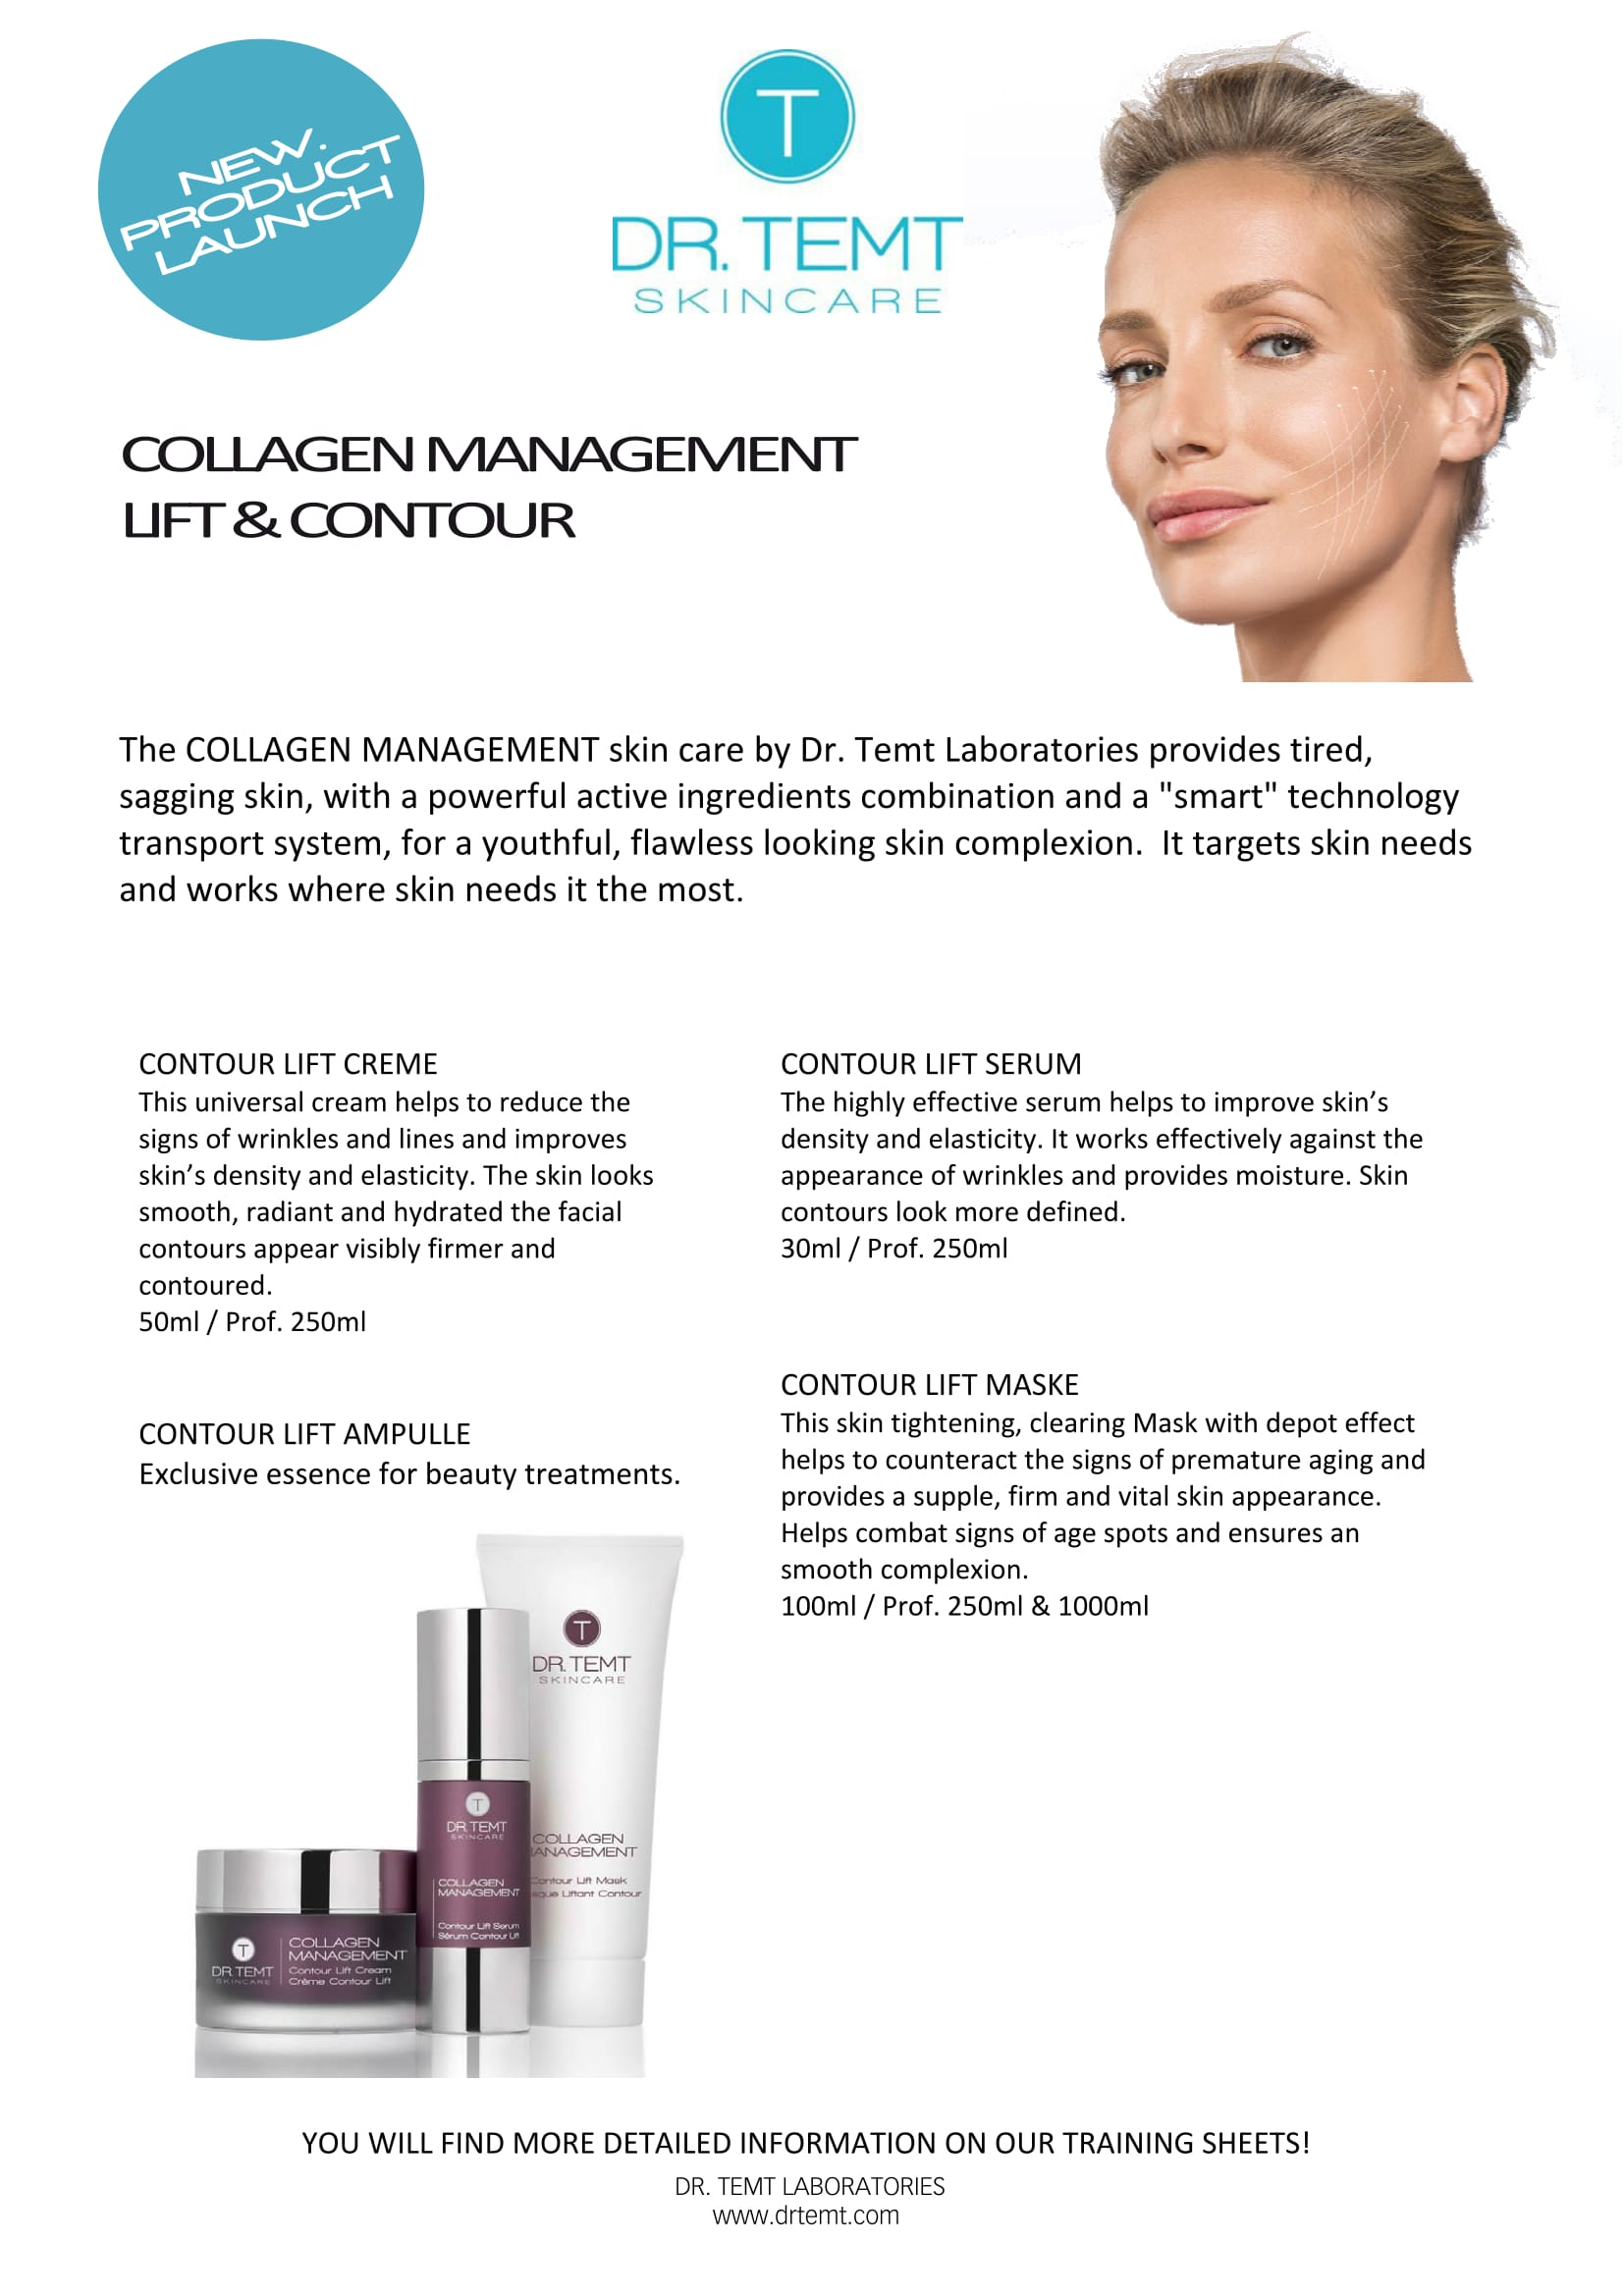 cosmetice-profesionale-anti-aging-collagen-management-dr.-temt.jpg